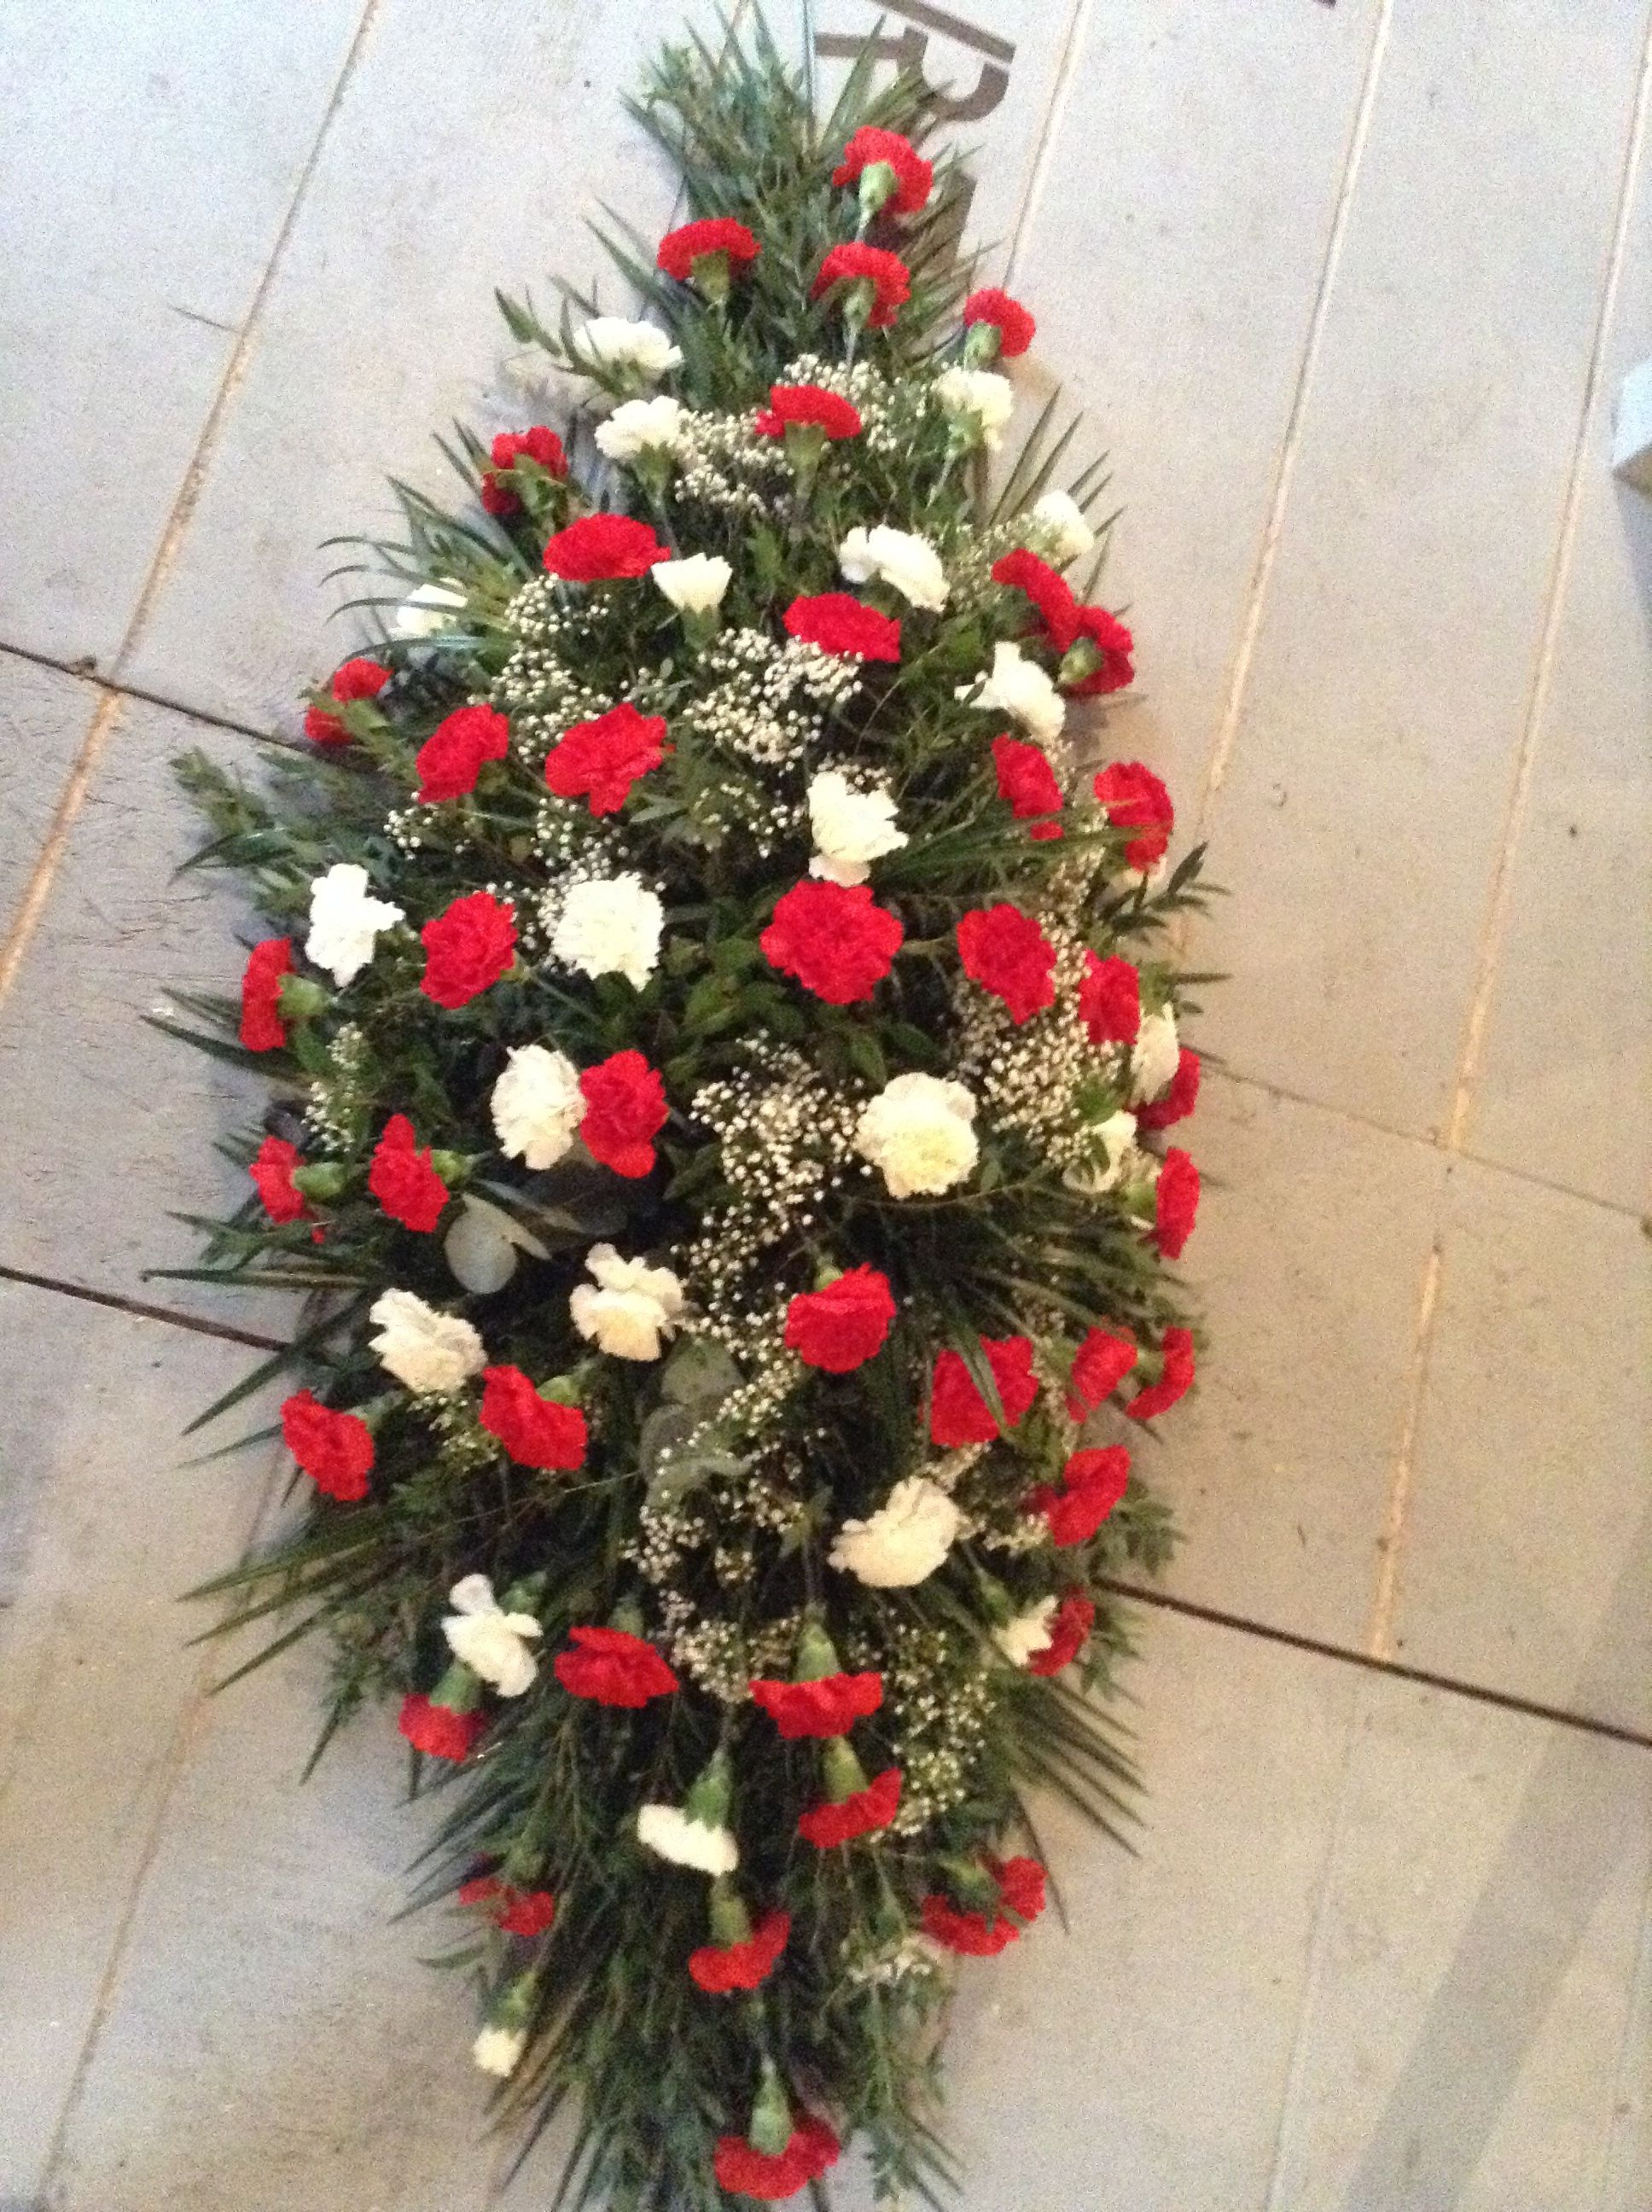 Funeral flowers red and white carnation funeral flowers red and funeral flowers red and white carnation funeral flowers red and white coffin spray izmirmasajfo Image collections